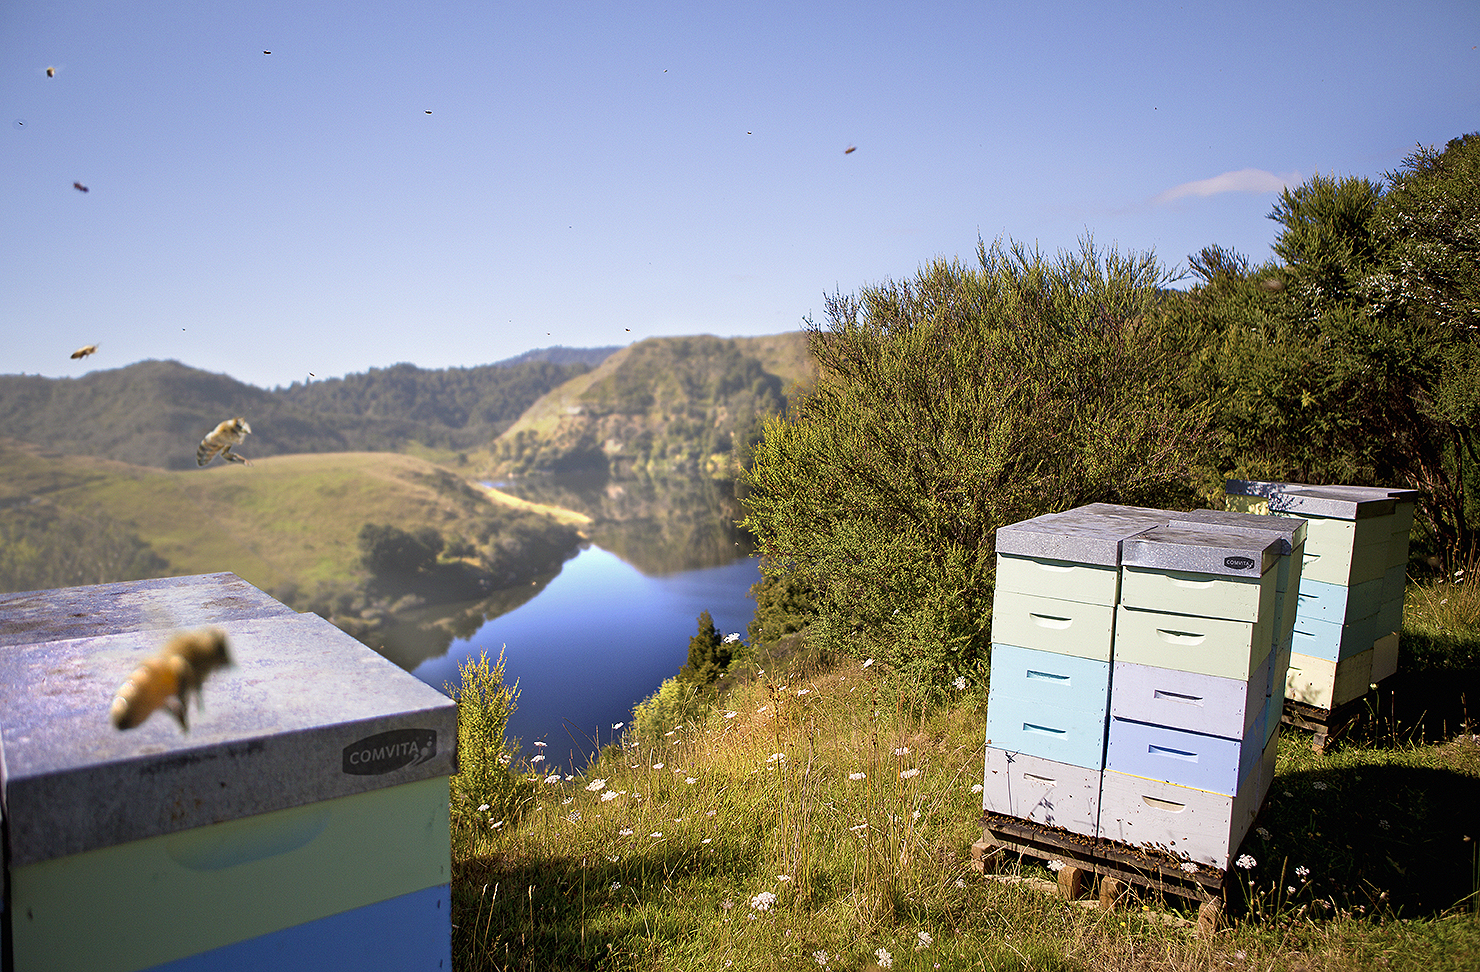 A comvita bee hive in an impossibly beautiful outdoor locale.